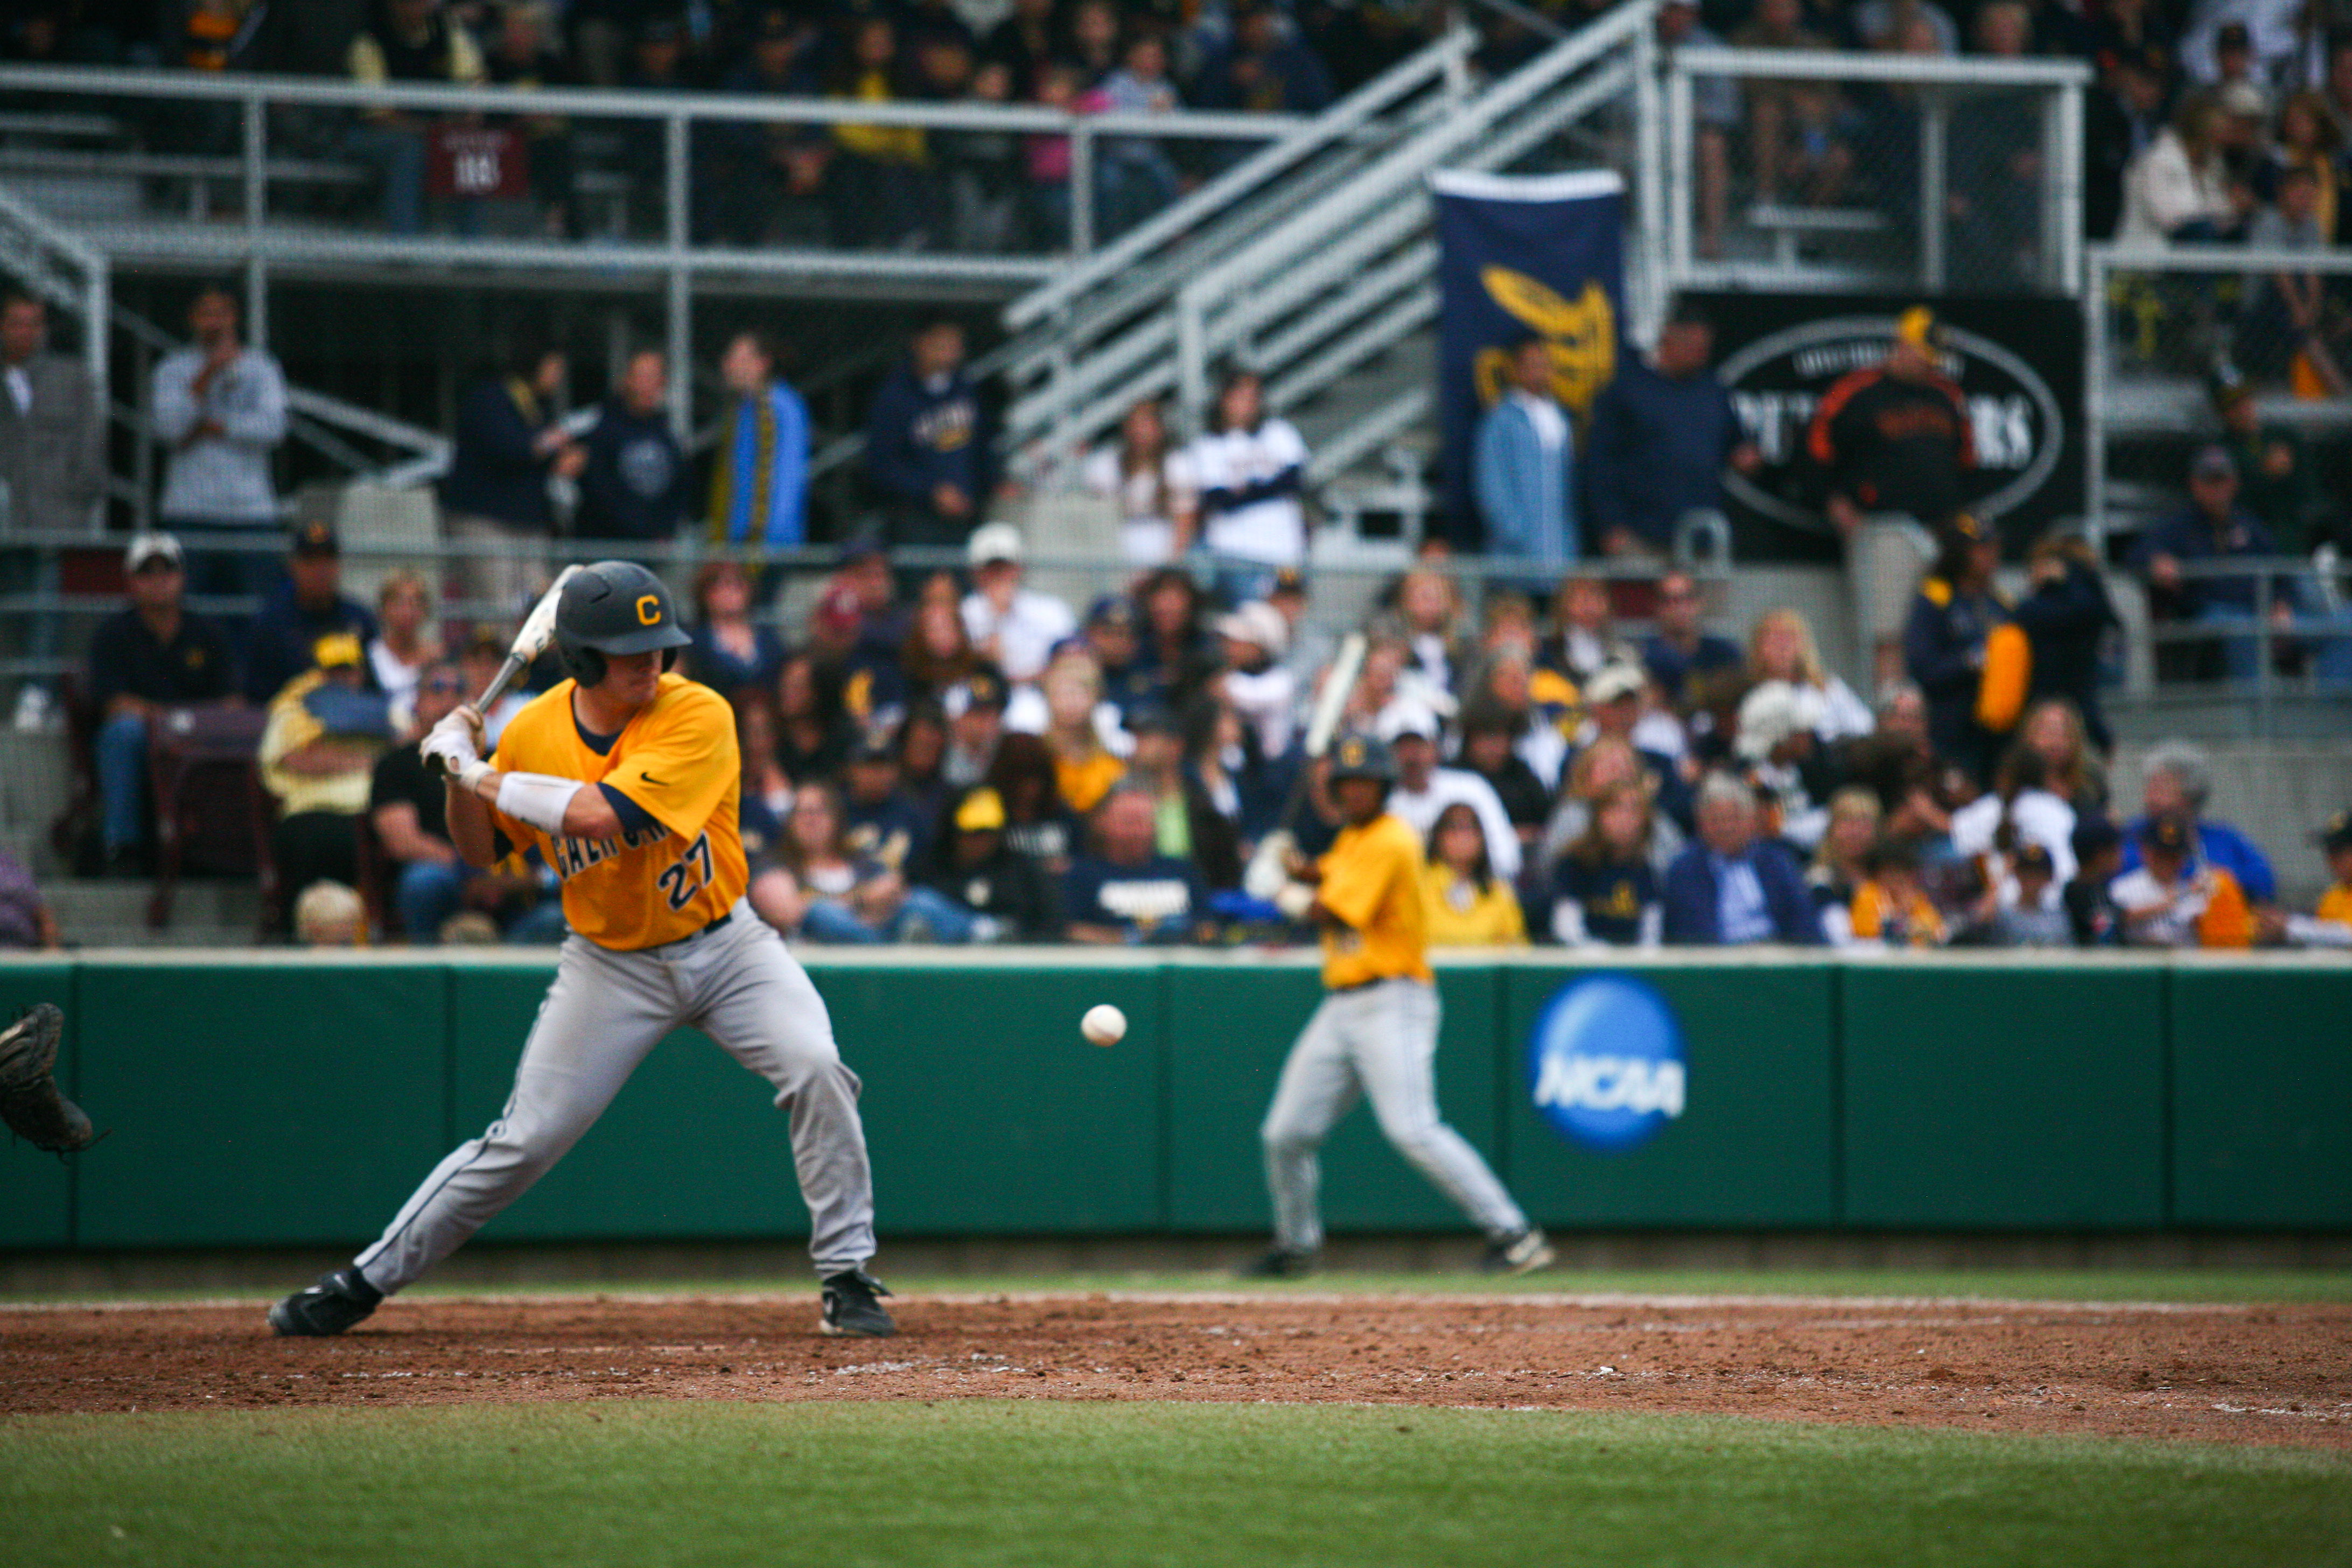 Catcher Chadd Krist went 1-for-4 with a double, Cal's only extra-base hit in its 8-1 loss to Virginia.